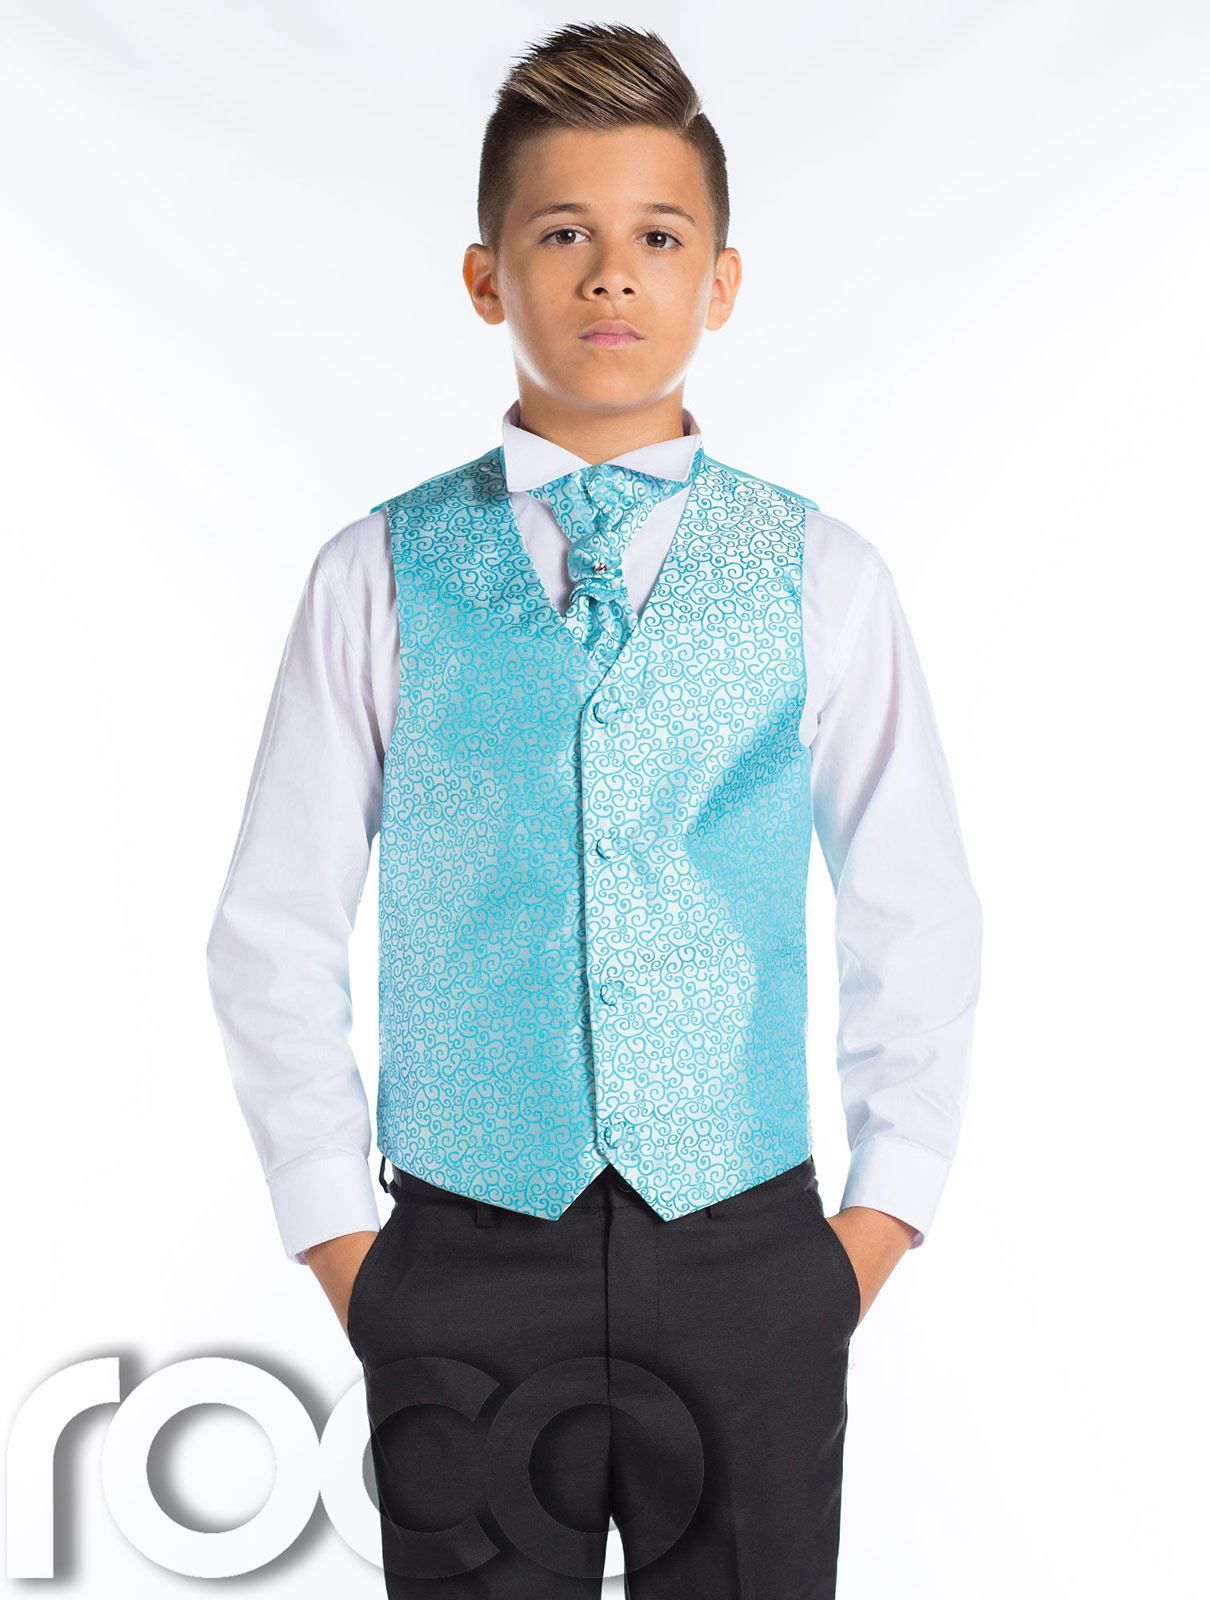 There is nothing more charming than little boys' suits and dress erlinelomantkgs831.gal, Home & More· New Events Every Day· Hurry, Limited Inventory· New Deals Every Day57,+ followers on Twitter.